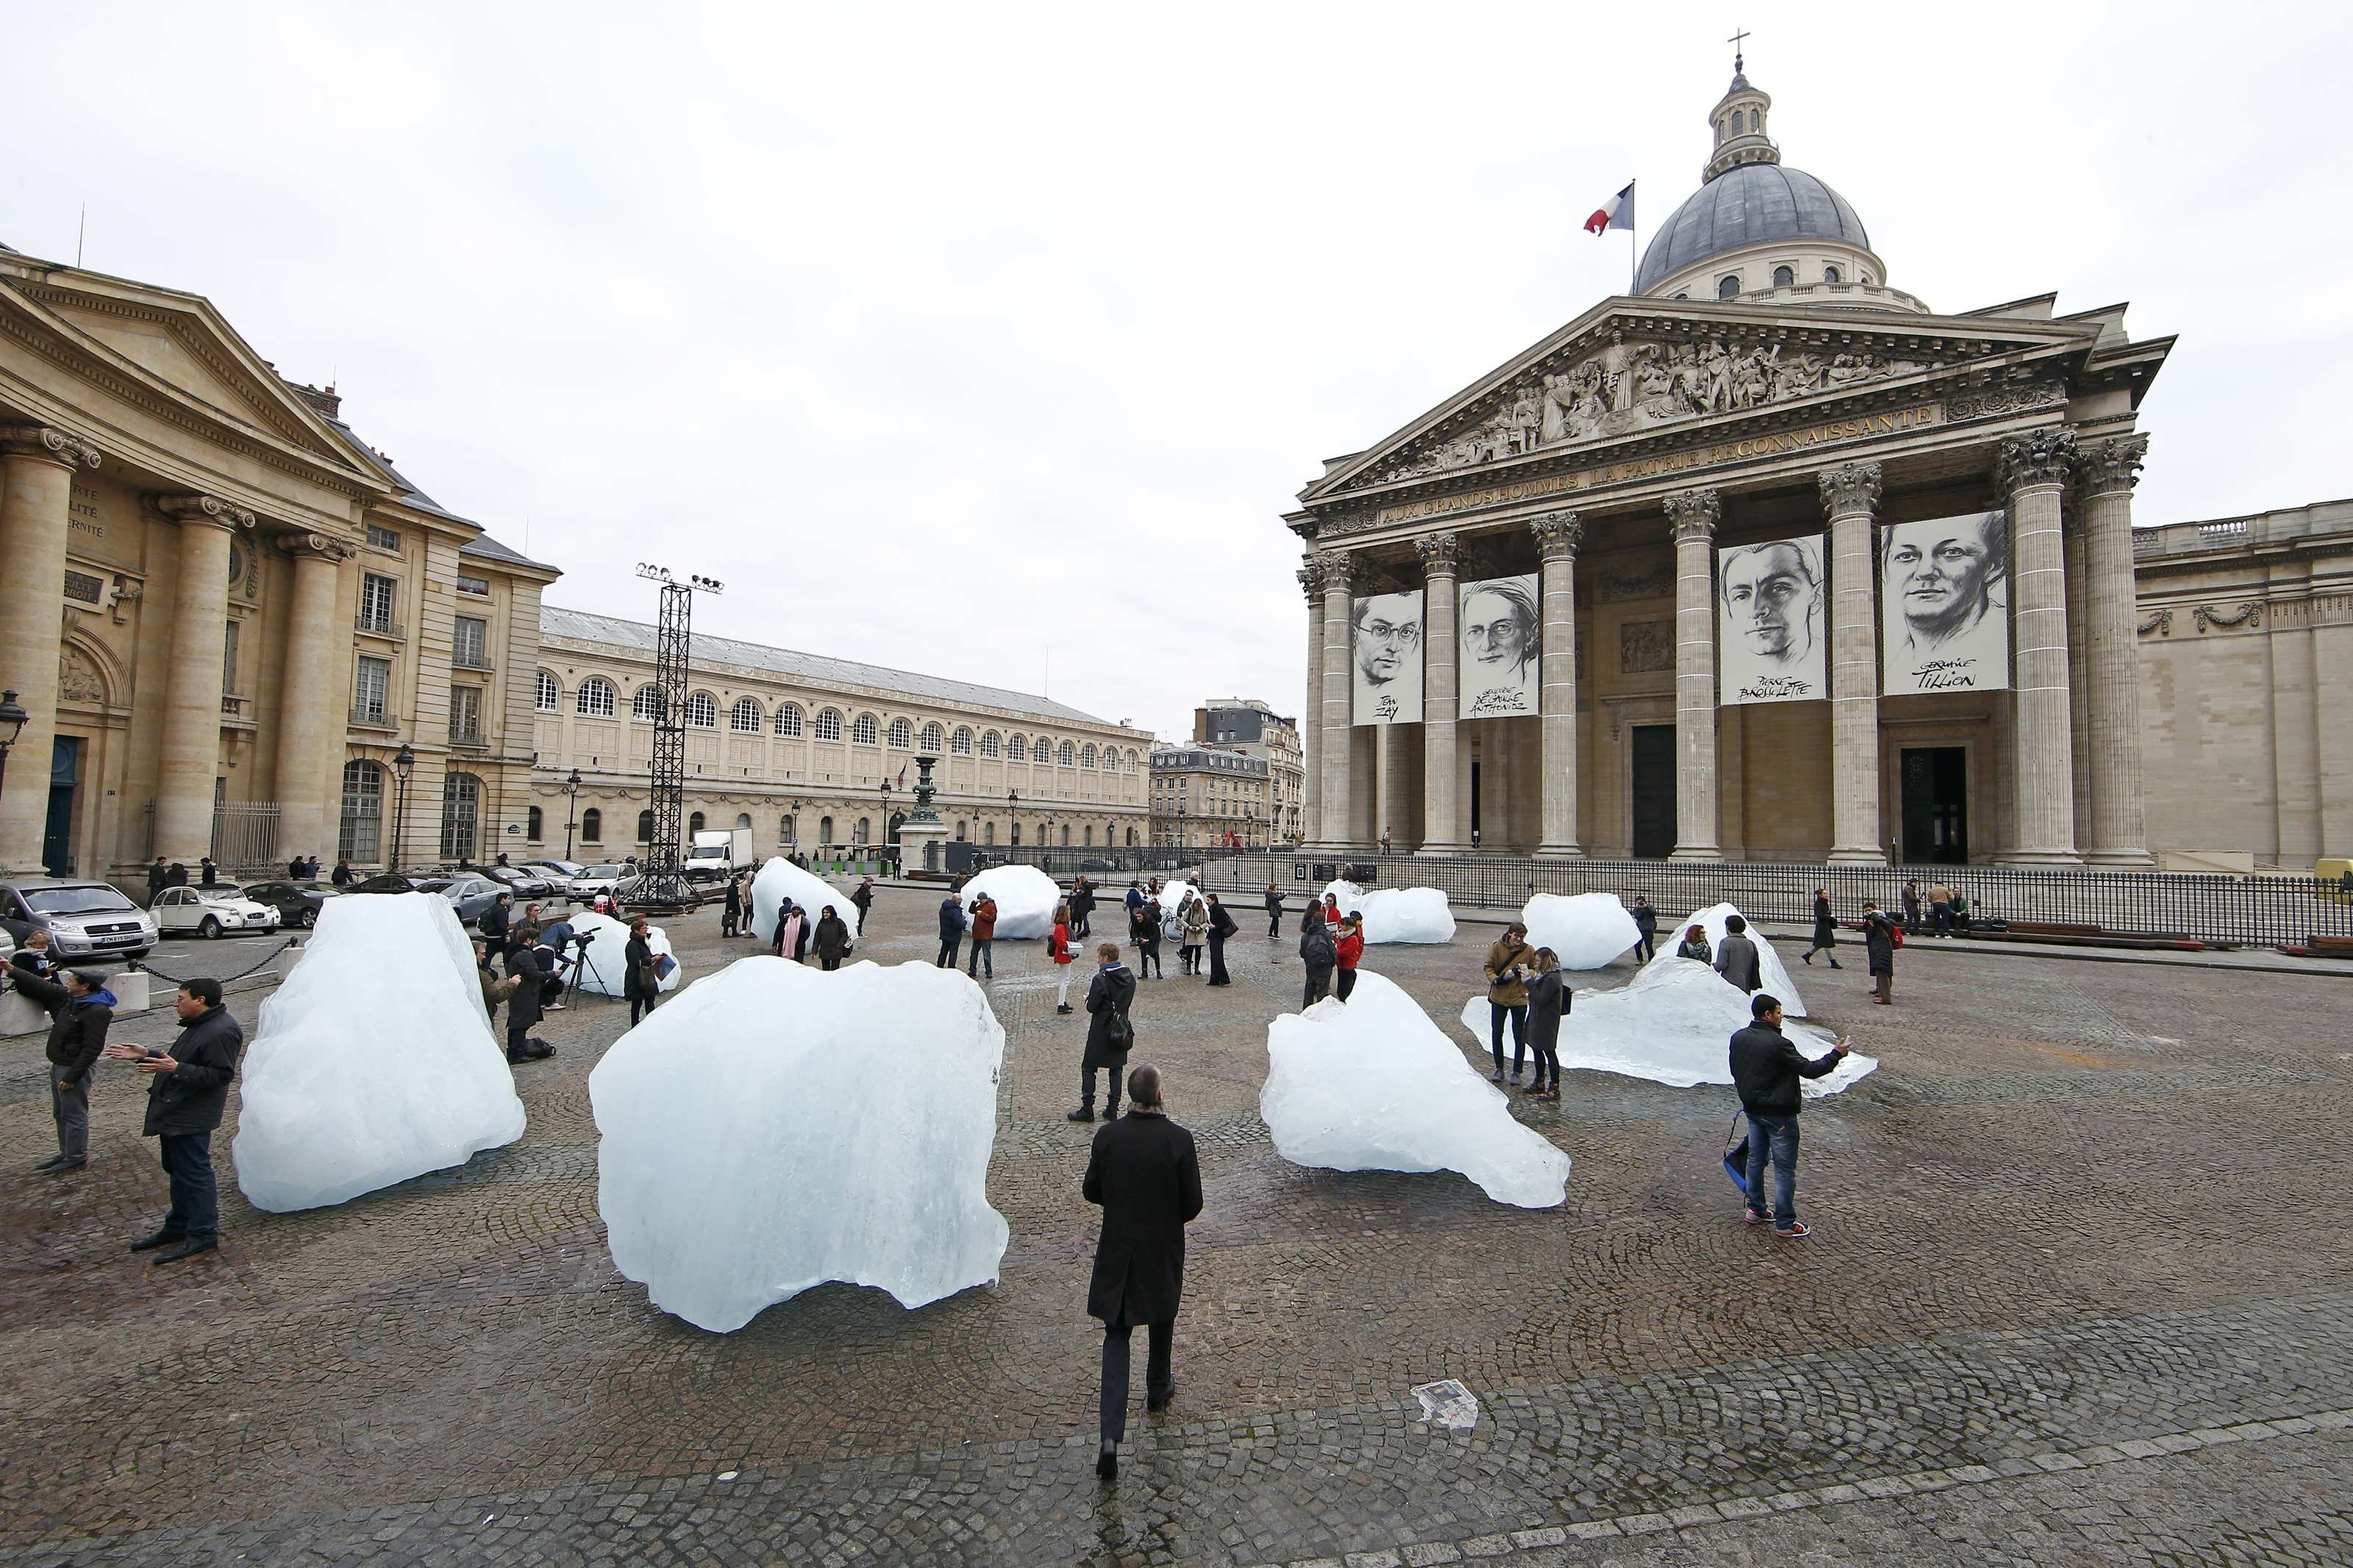 Ice blocks harvested in Greenland and installed on the Place du Pantheon as the COP21 continues in Paris on Dec. 3, 2015.